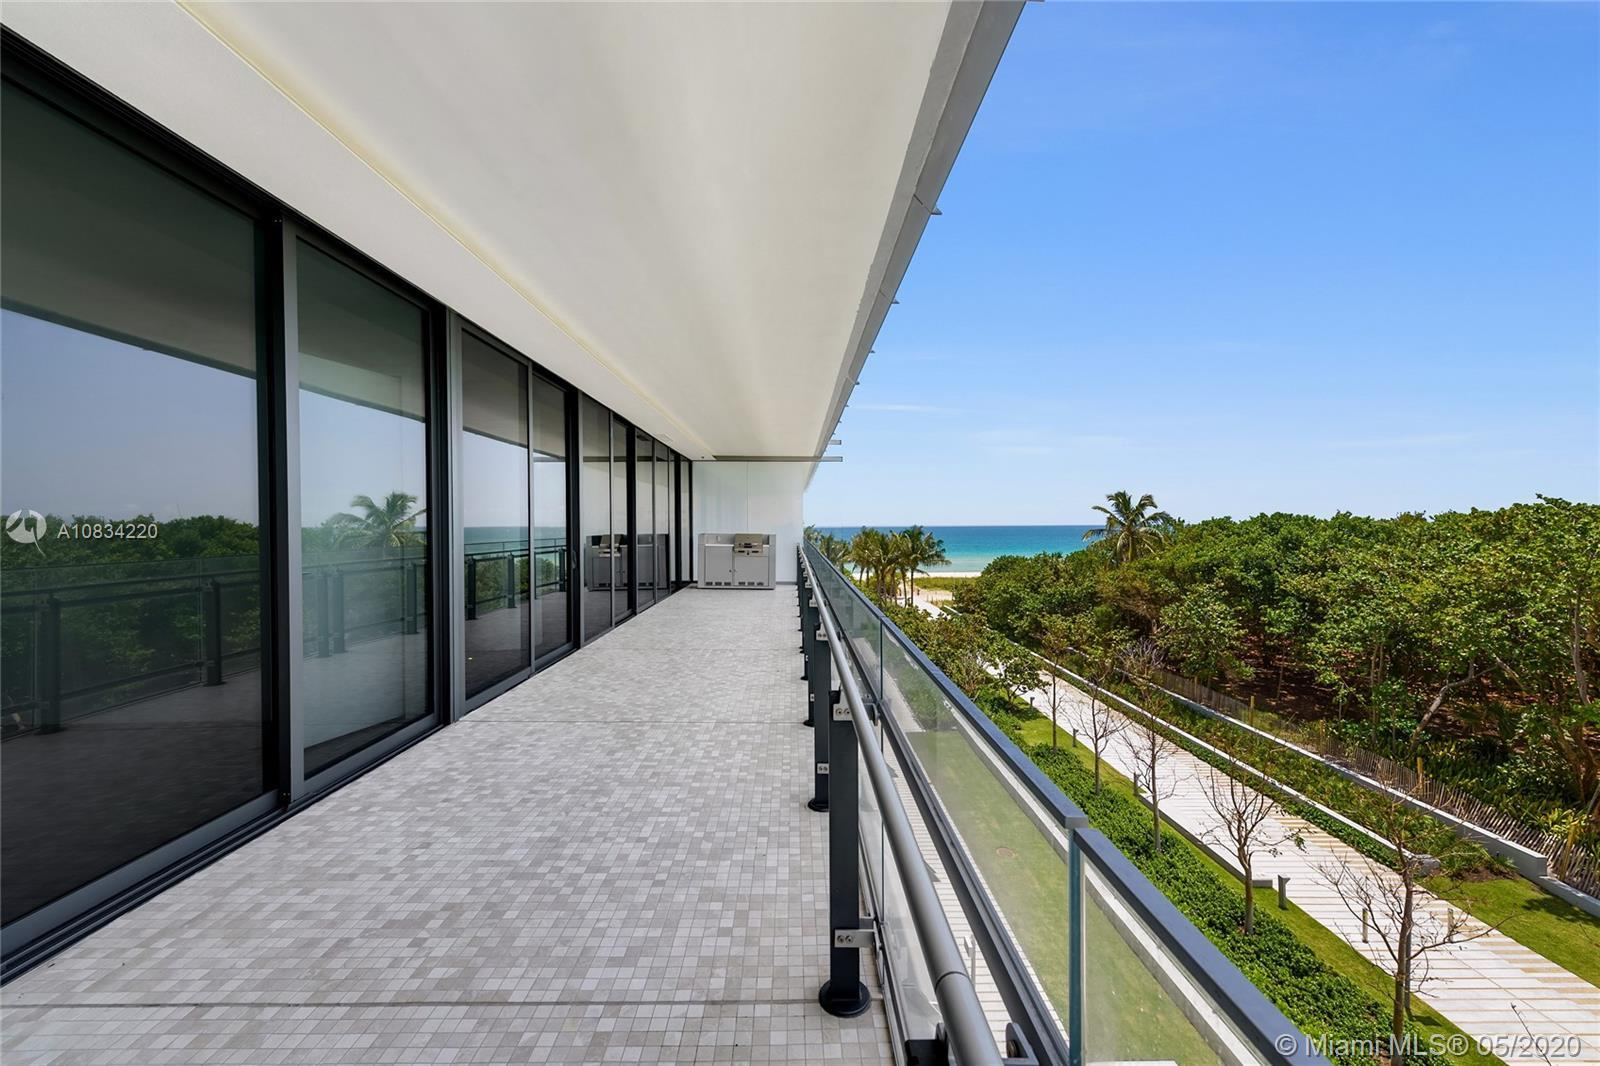 Eighty Seven Park by Renzo Piano is a collection of private oceanfront residences designed to seamle